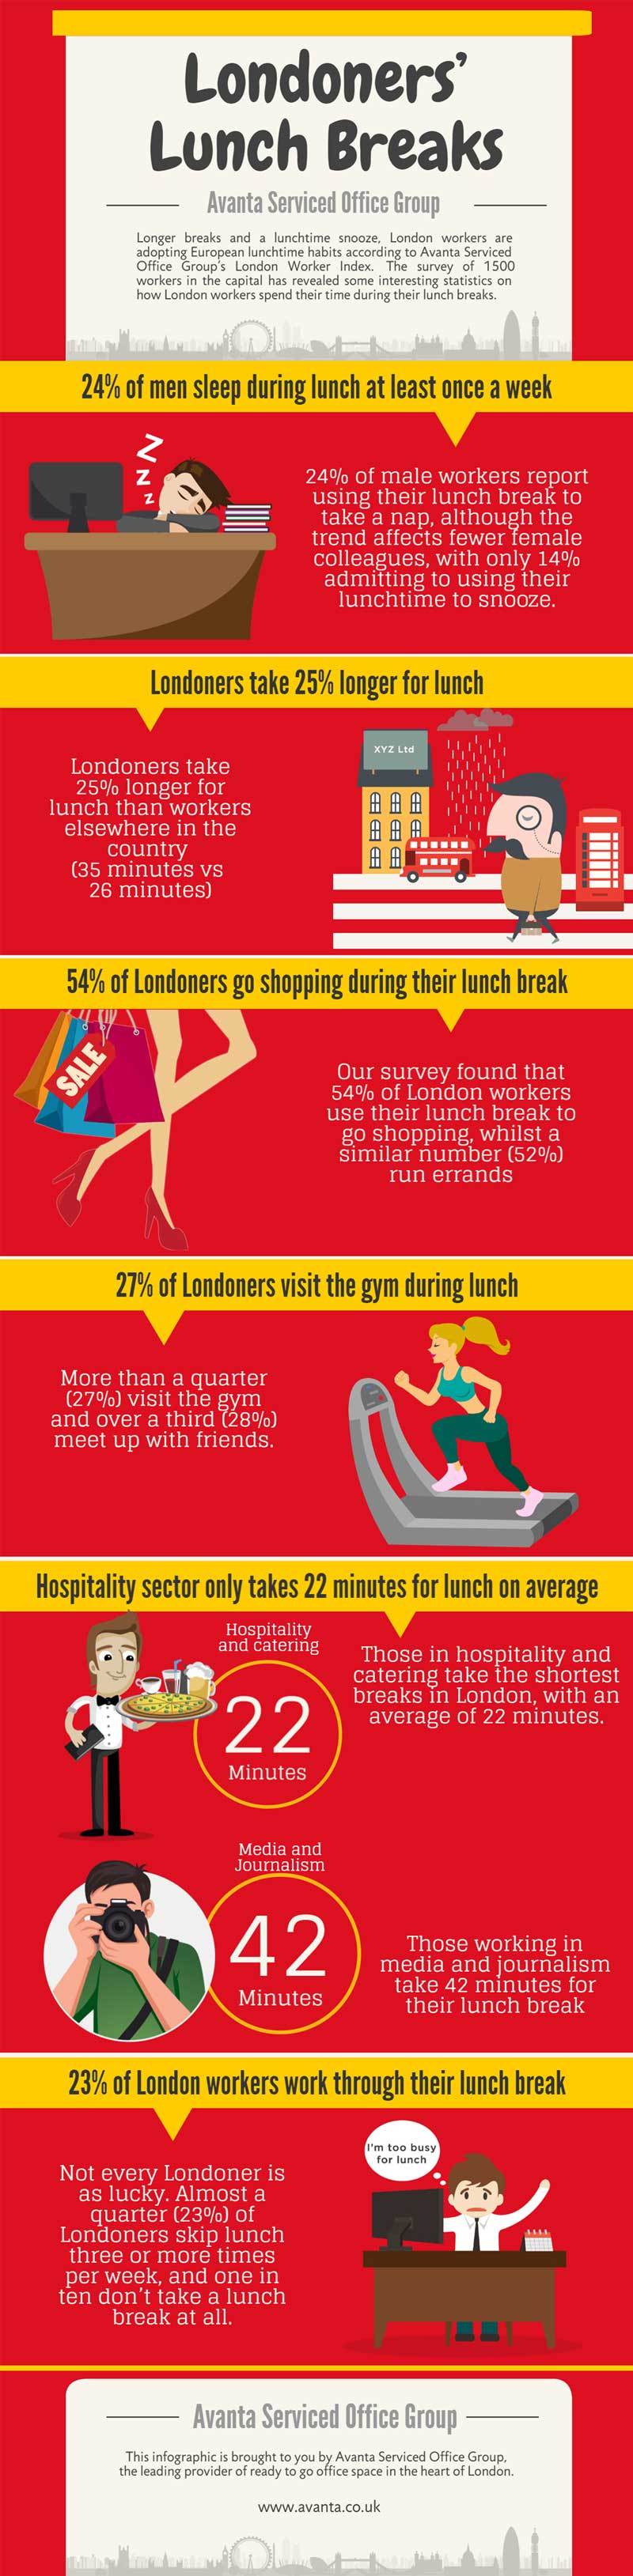 Londoners Lunch Breaks